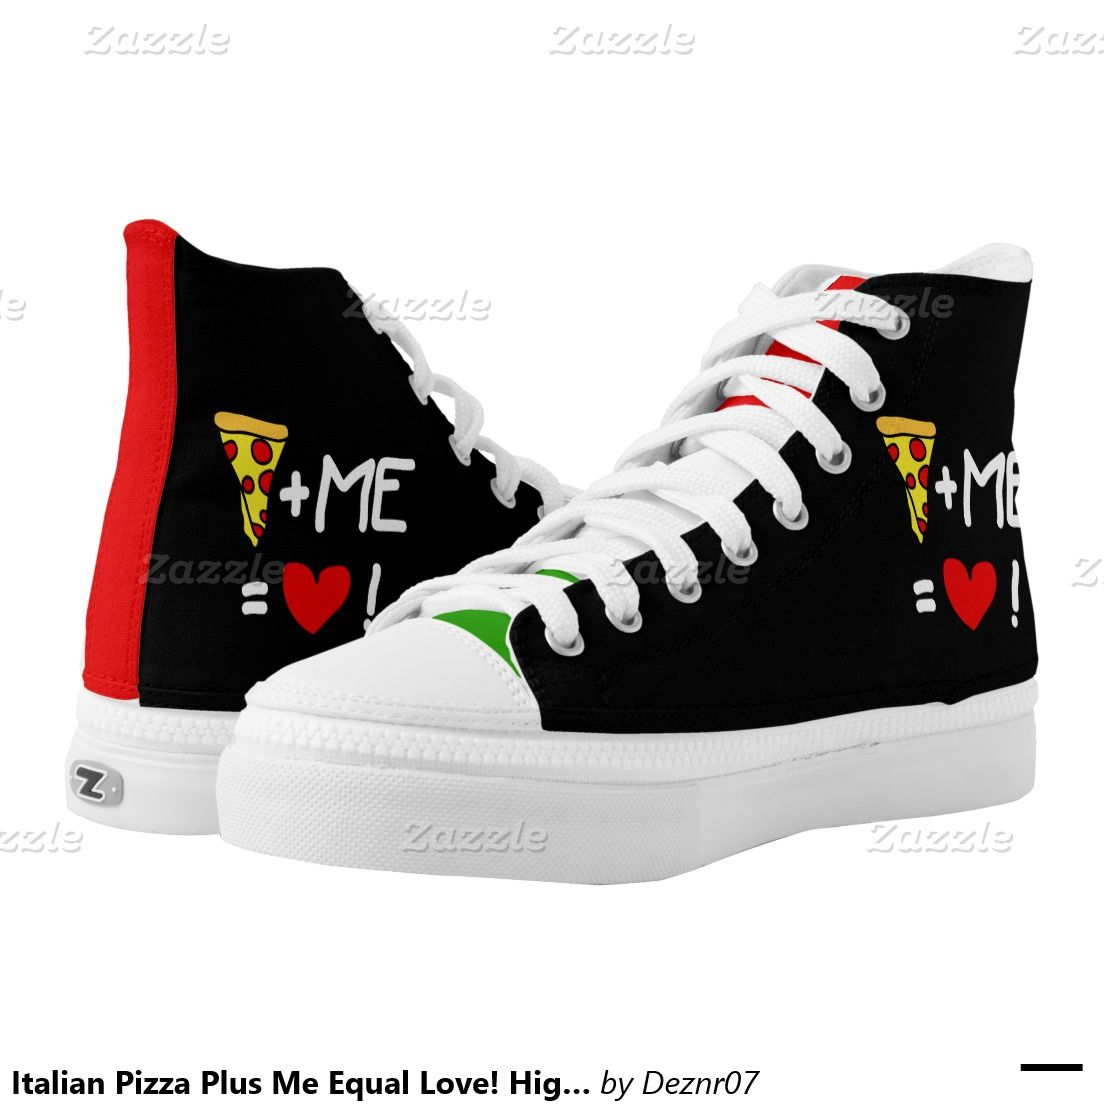 fde4147370 Italian Pizza Plus Me Equal Love! High Top Sneaker Printed Shoes